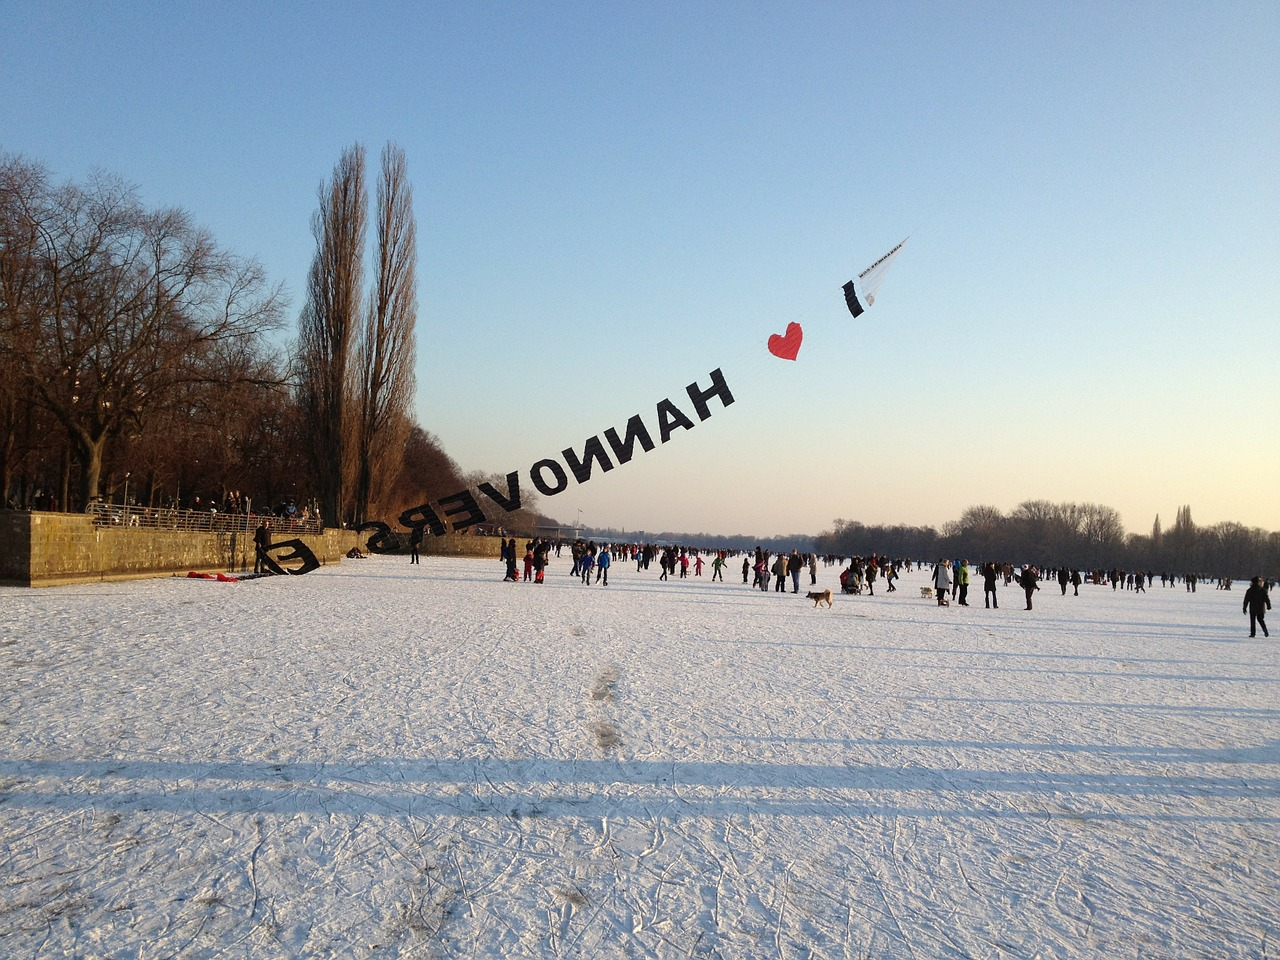 hanover,lake maschsee,frozen,skate,winter,ice skating,free pictures, free photos, free images, royalty free, free illustrations, public domain